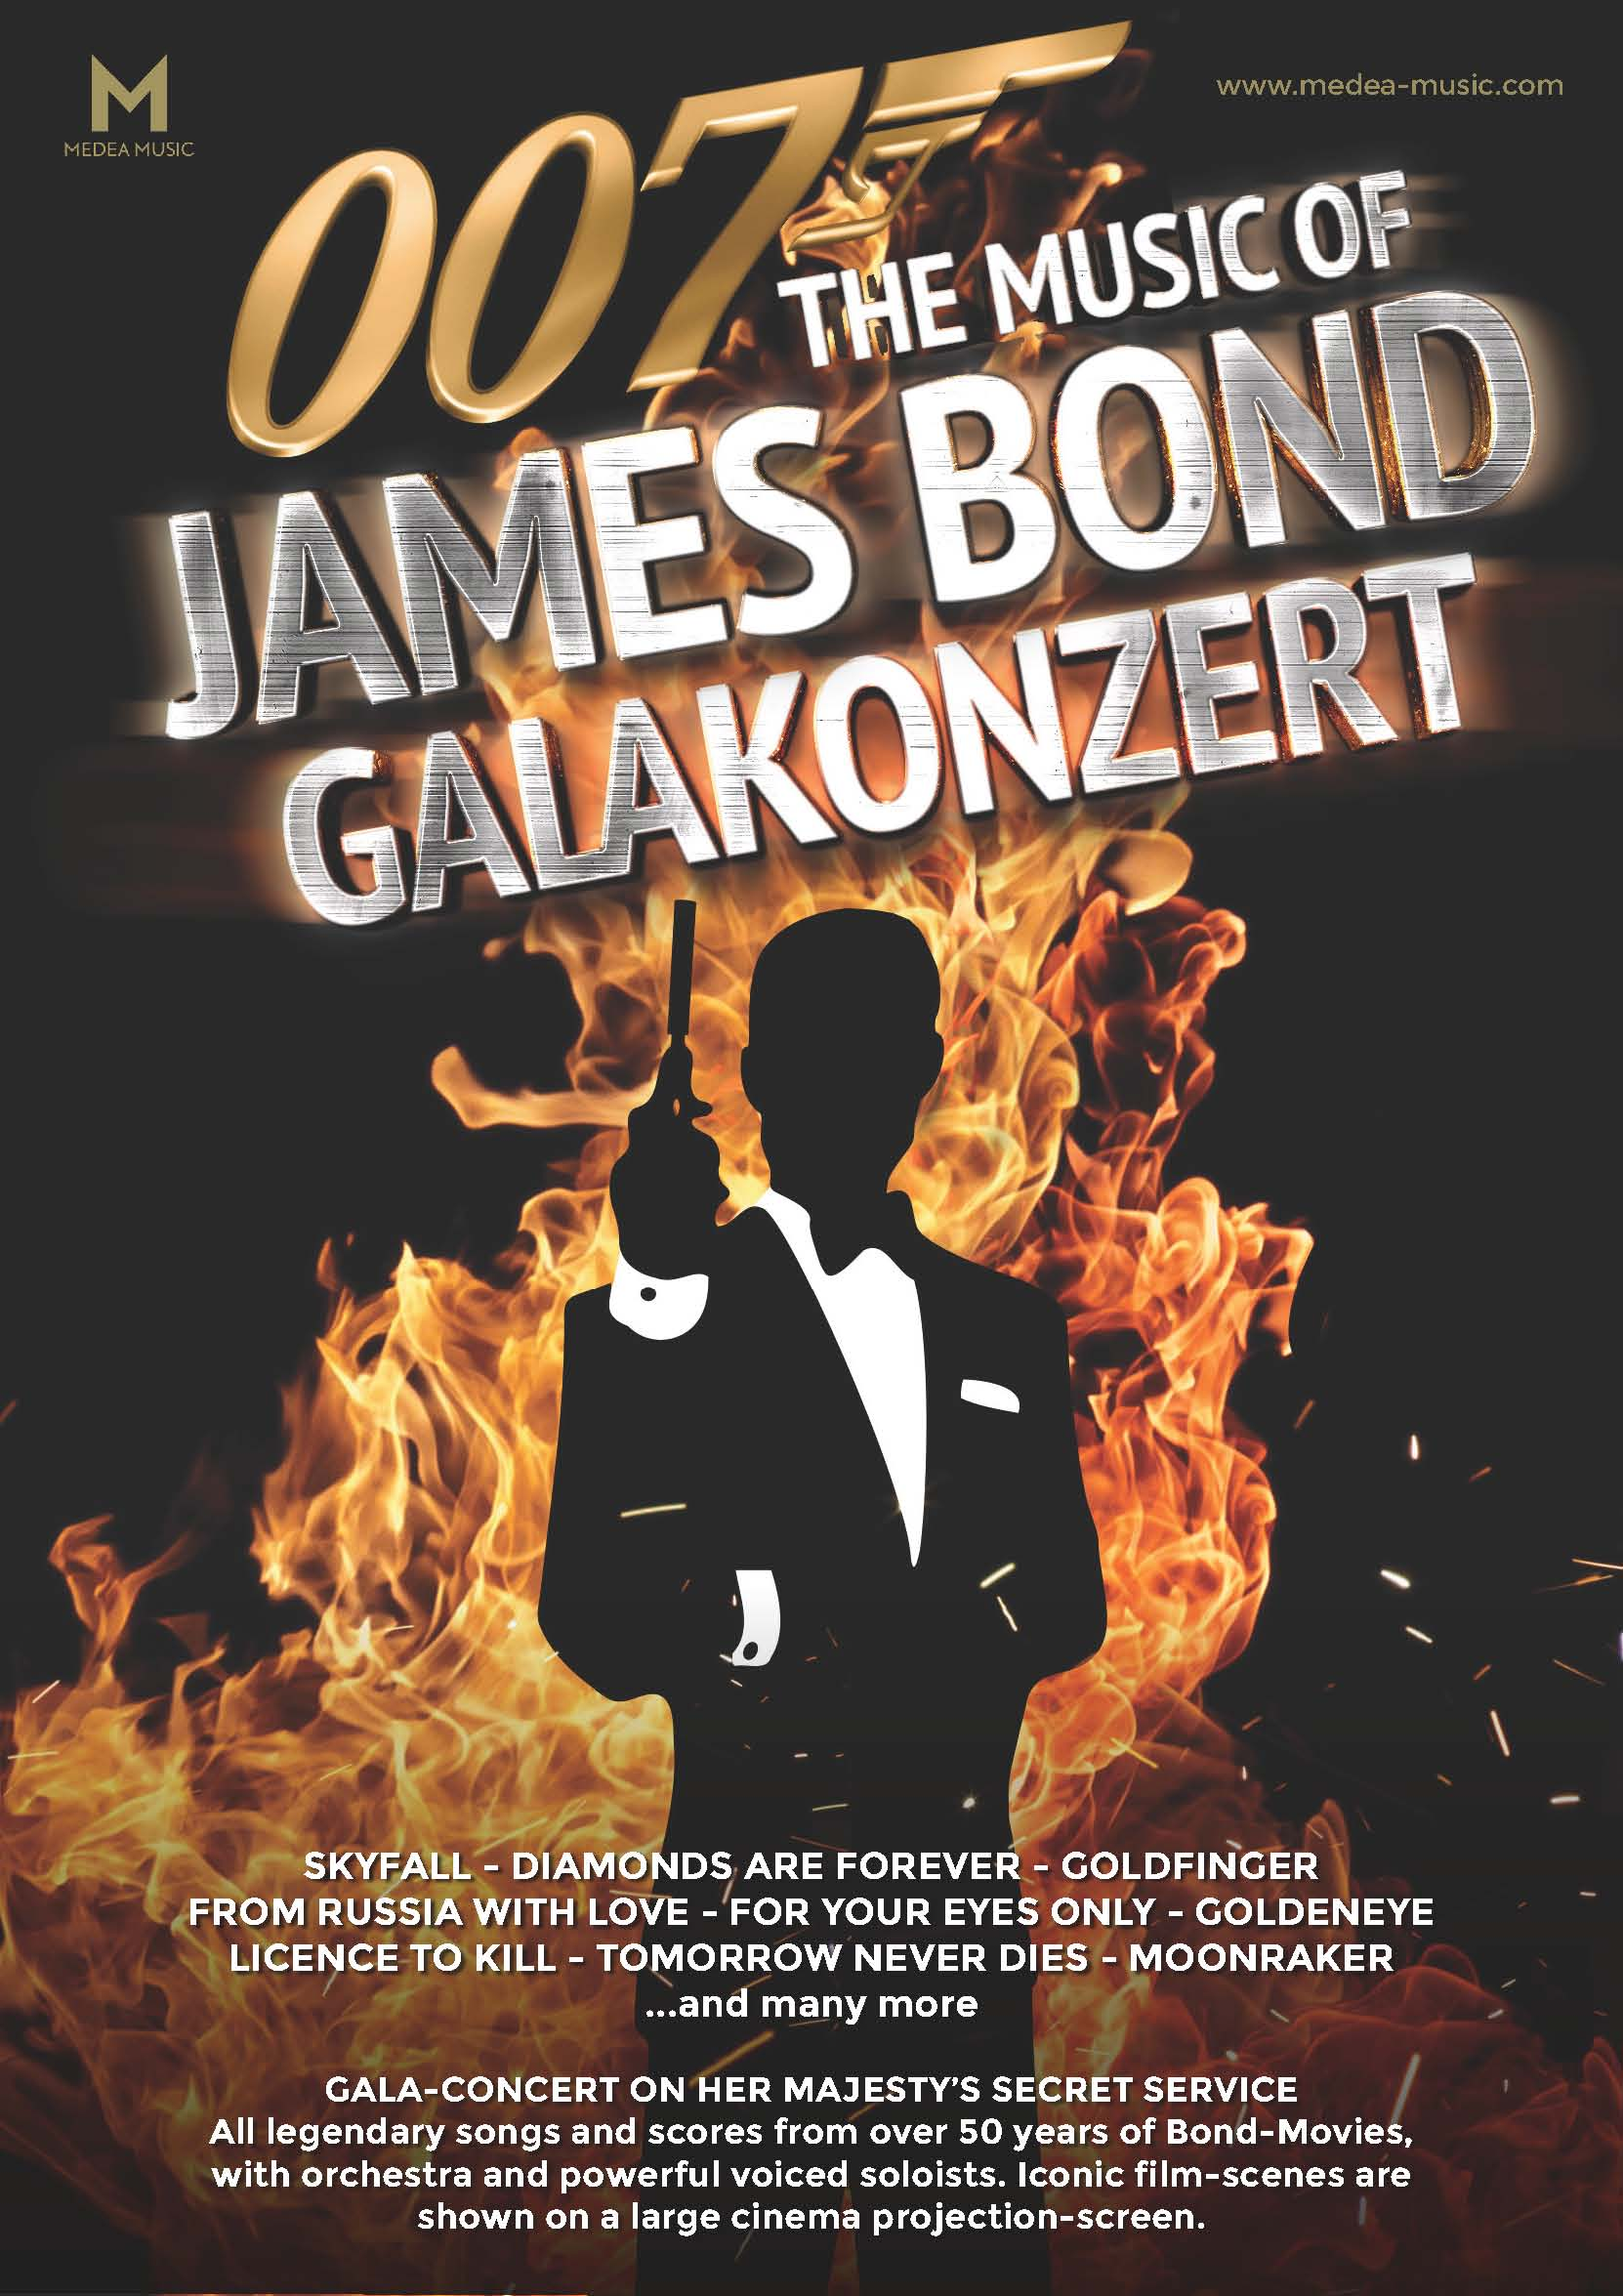 medea_james bond_galaconcert